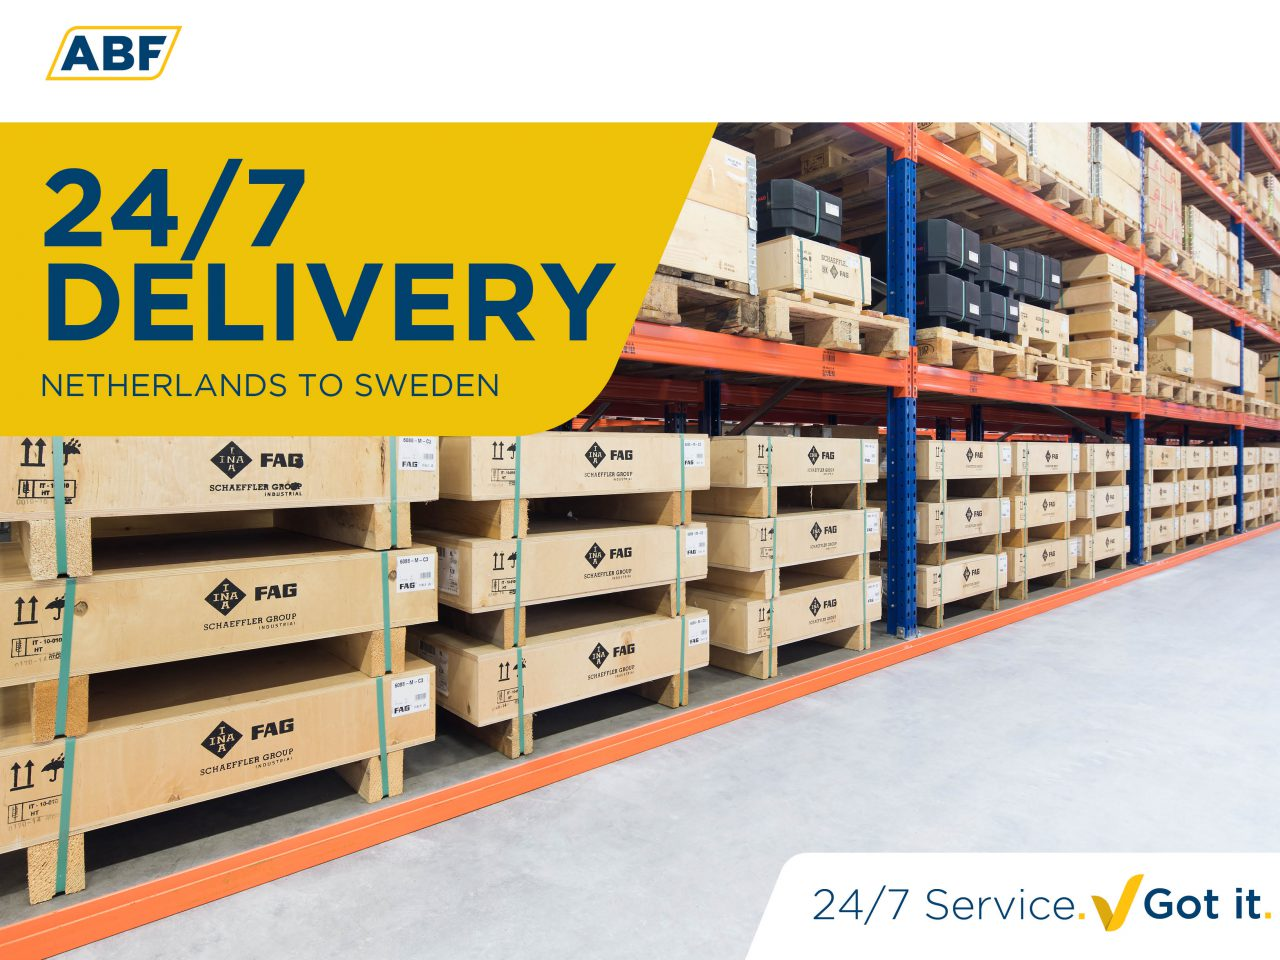 ABF delivers special bearings within 24 hours to Sweden